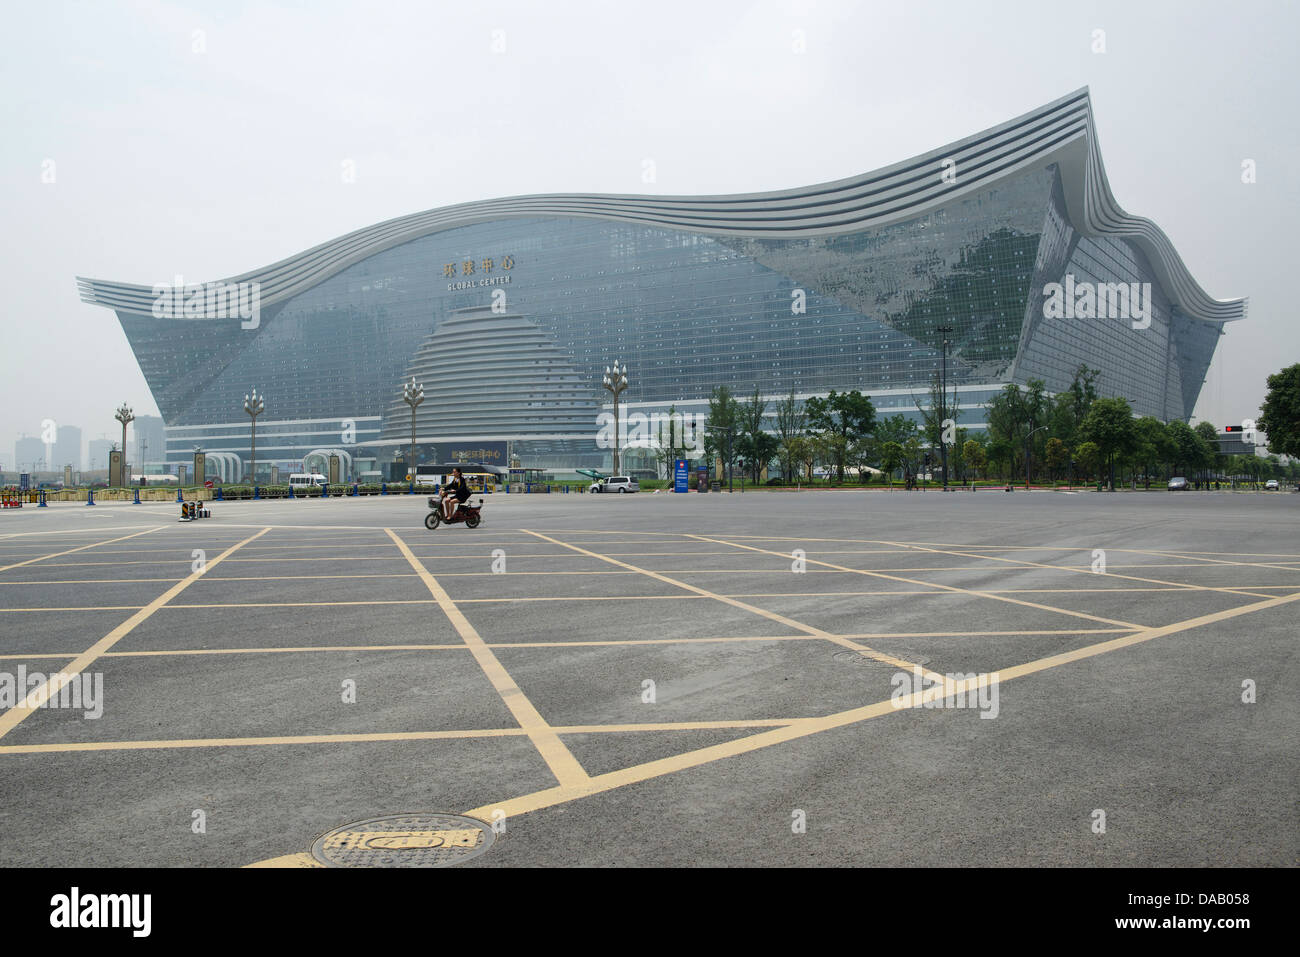 New Century Global Center in Chengdu, Sichuan province, China. 07-May-2013 - Stock Image